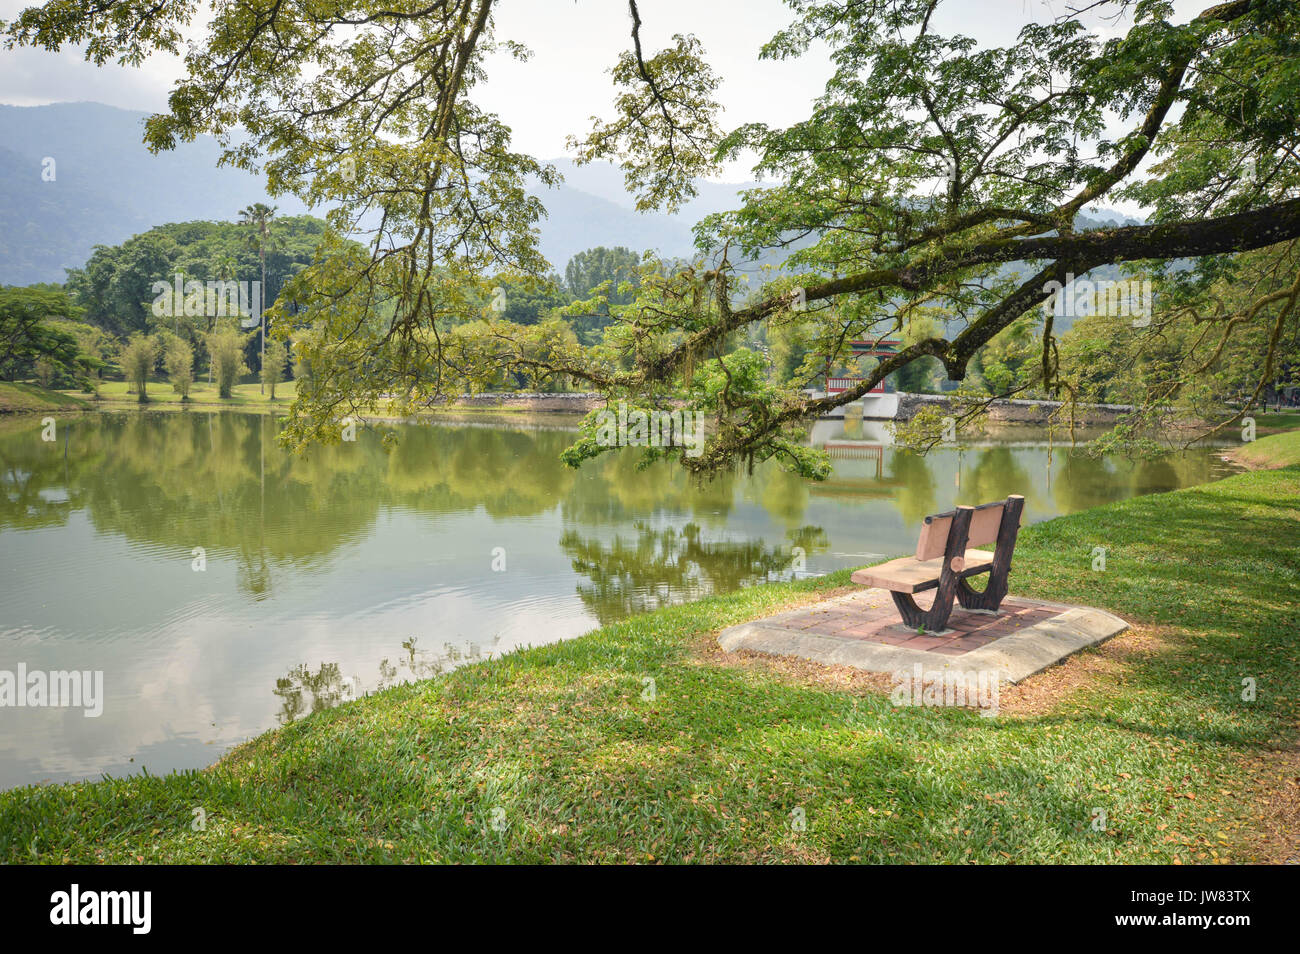 Bench and water reflections in Taman Tasik, aka Lake Gardens, in the city of Taiping, Perak State, Malaysia - Stock Image